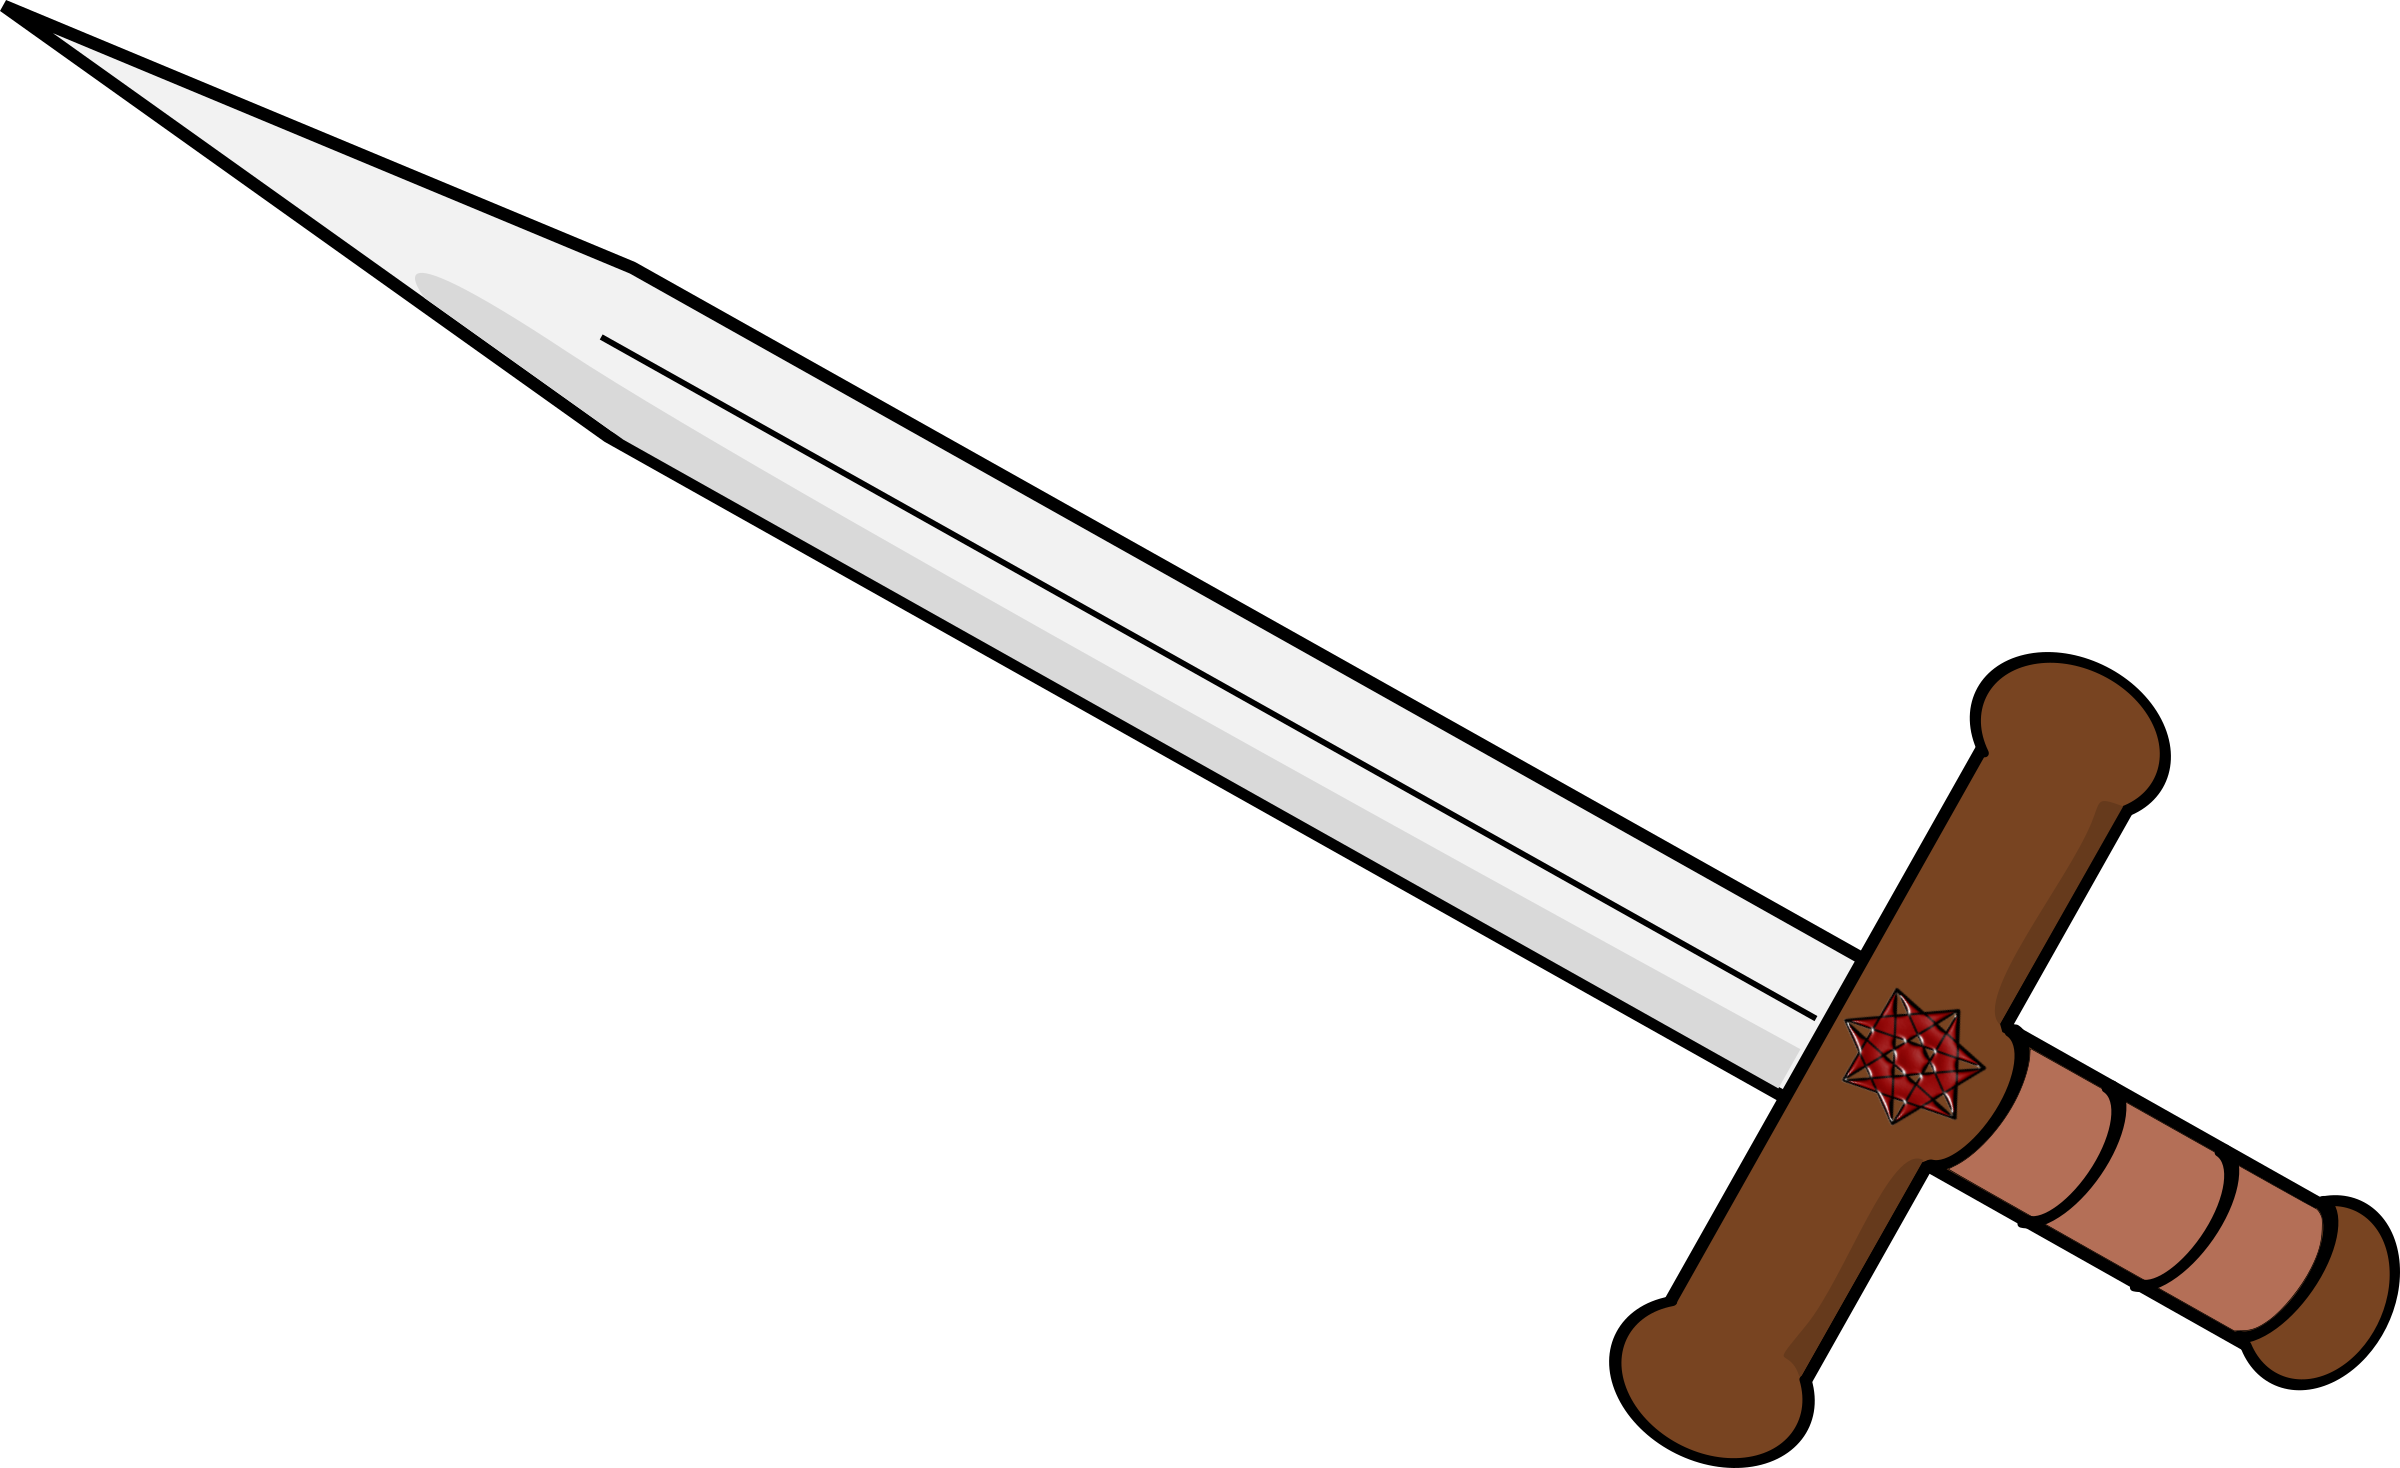 Clipart fire sword. Censorship is a double